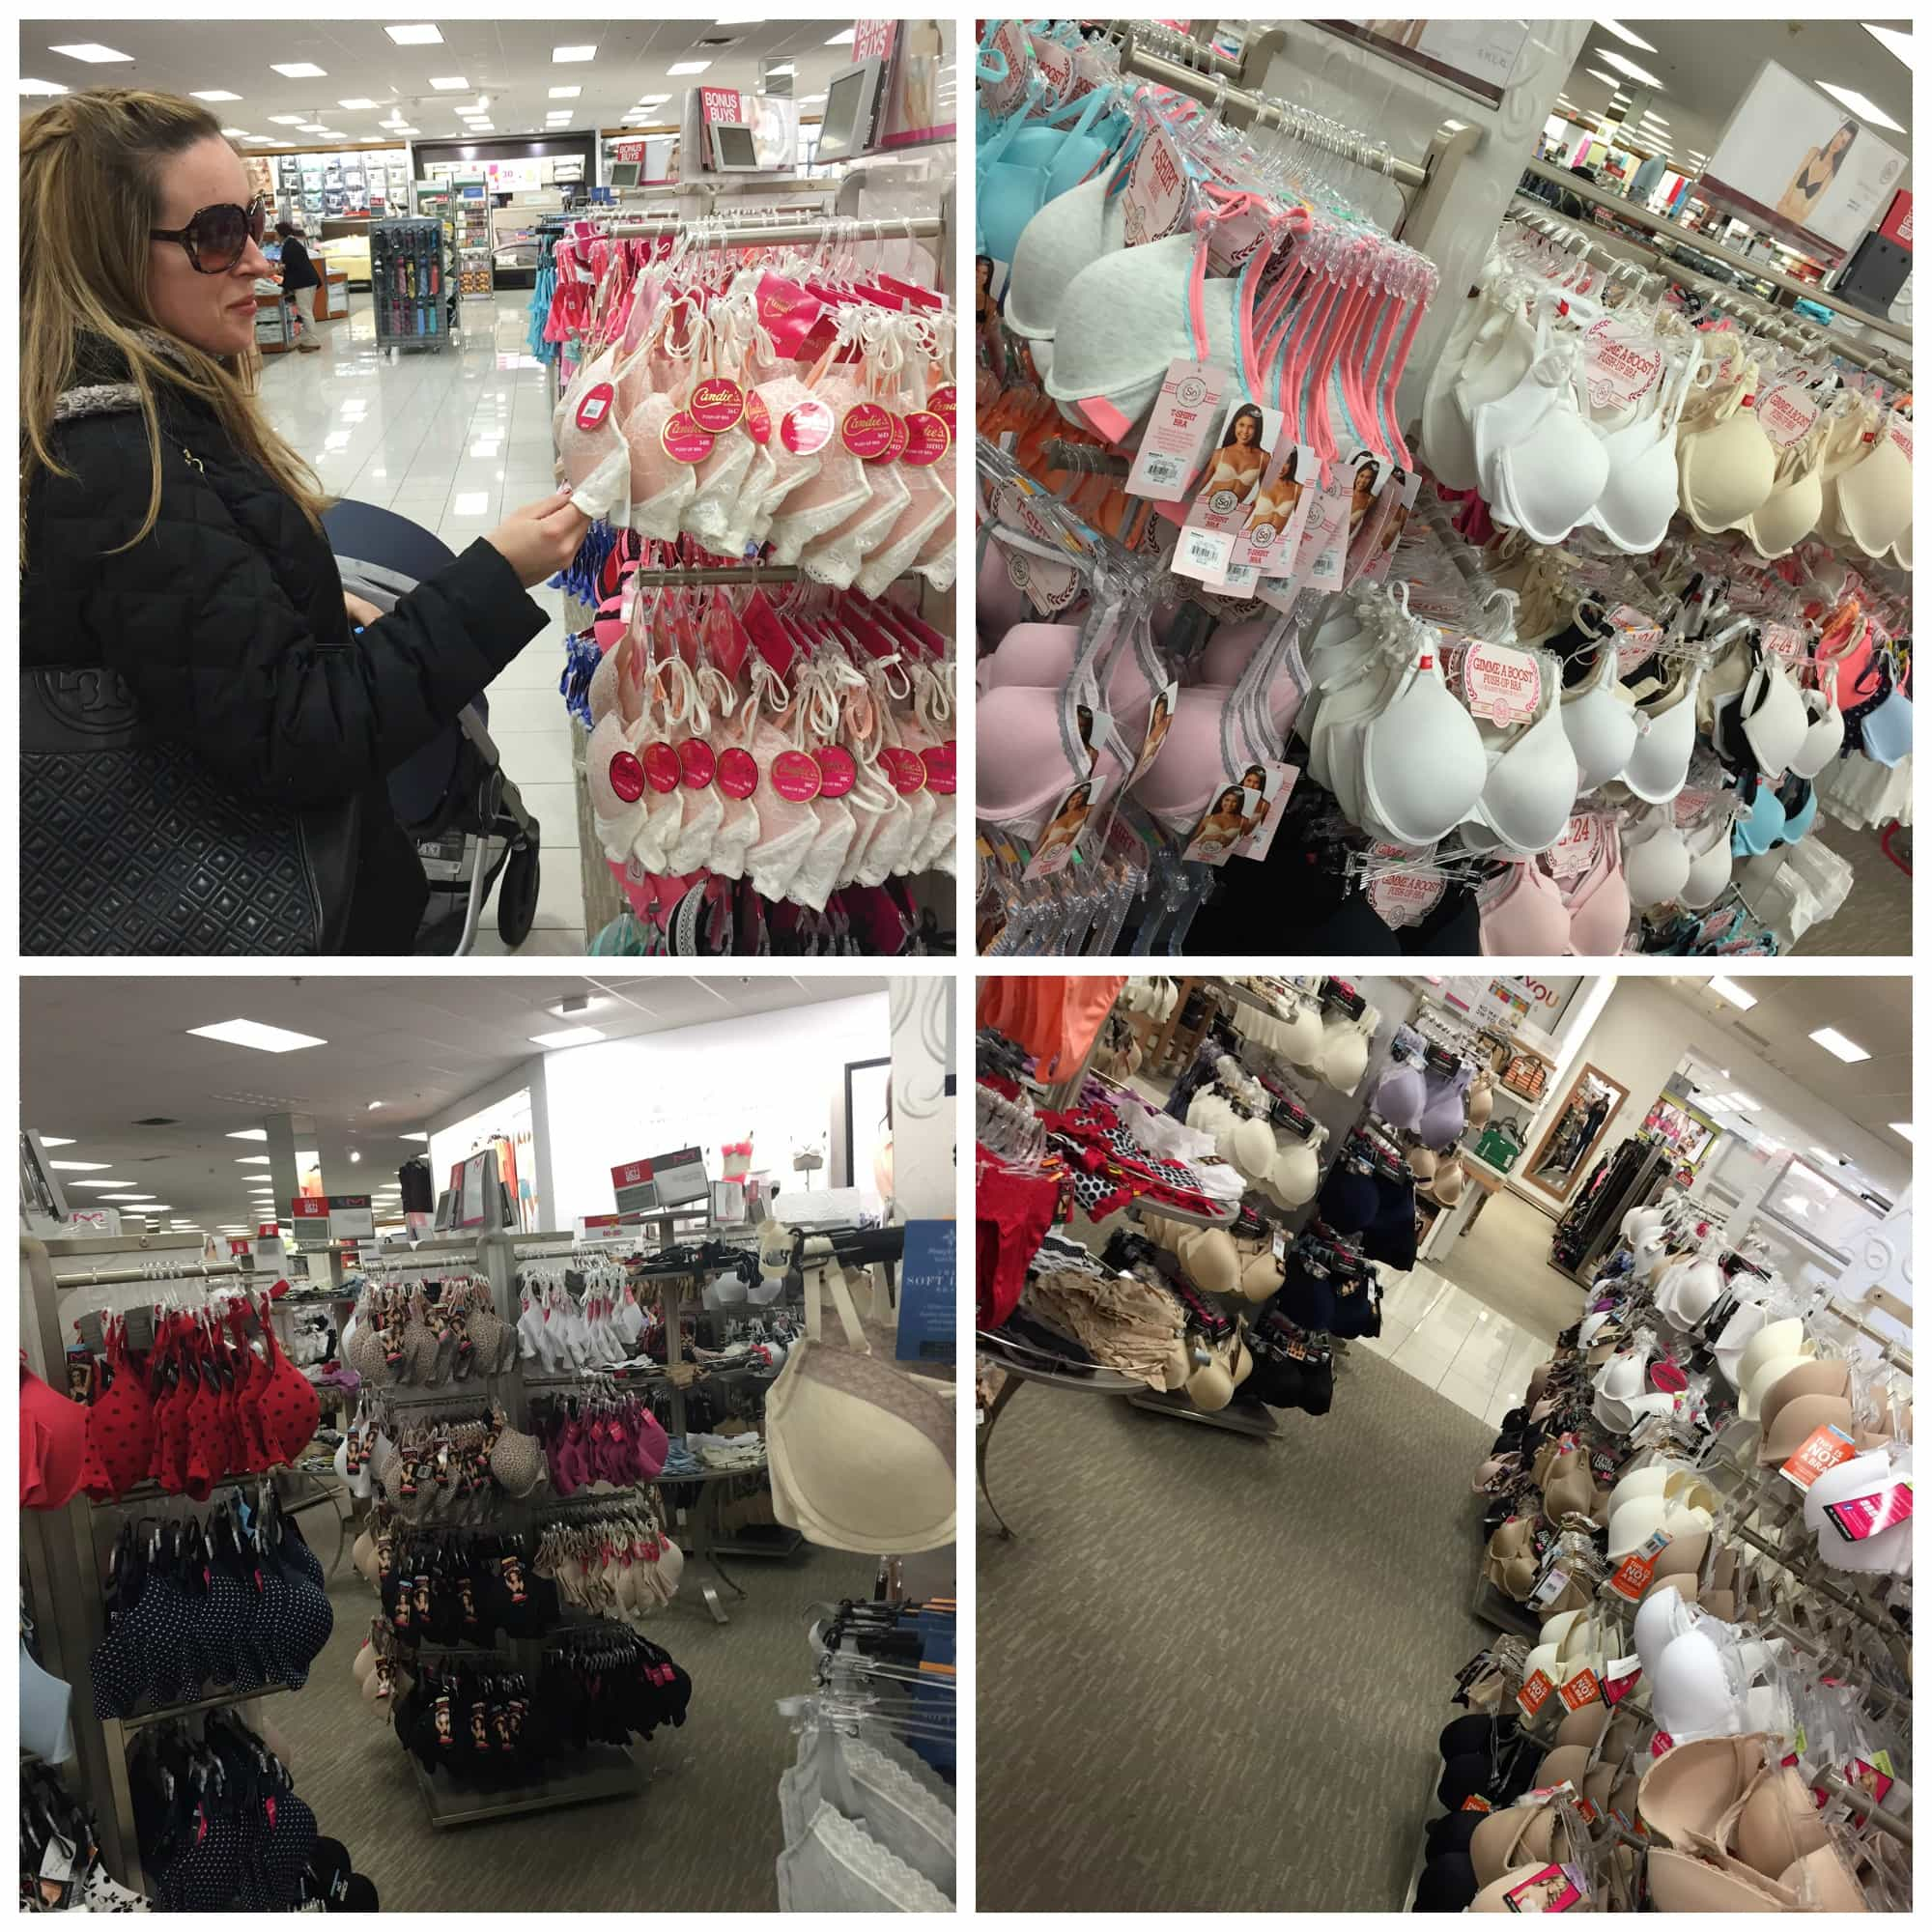 Finding The Perfect Bra At Kohl's PLUS A $200 Giveaway! #FavoriteBra @Kohls